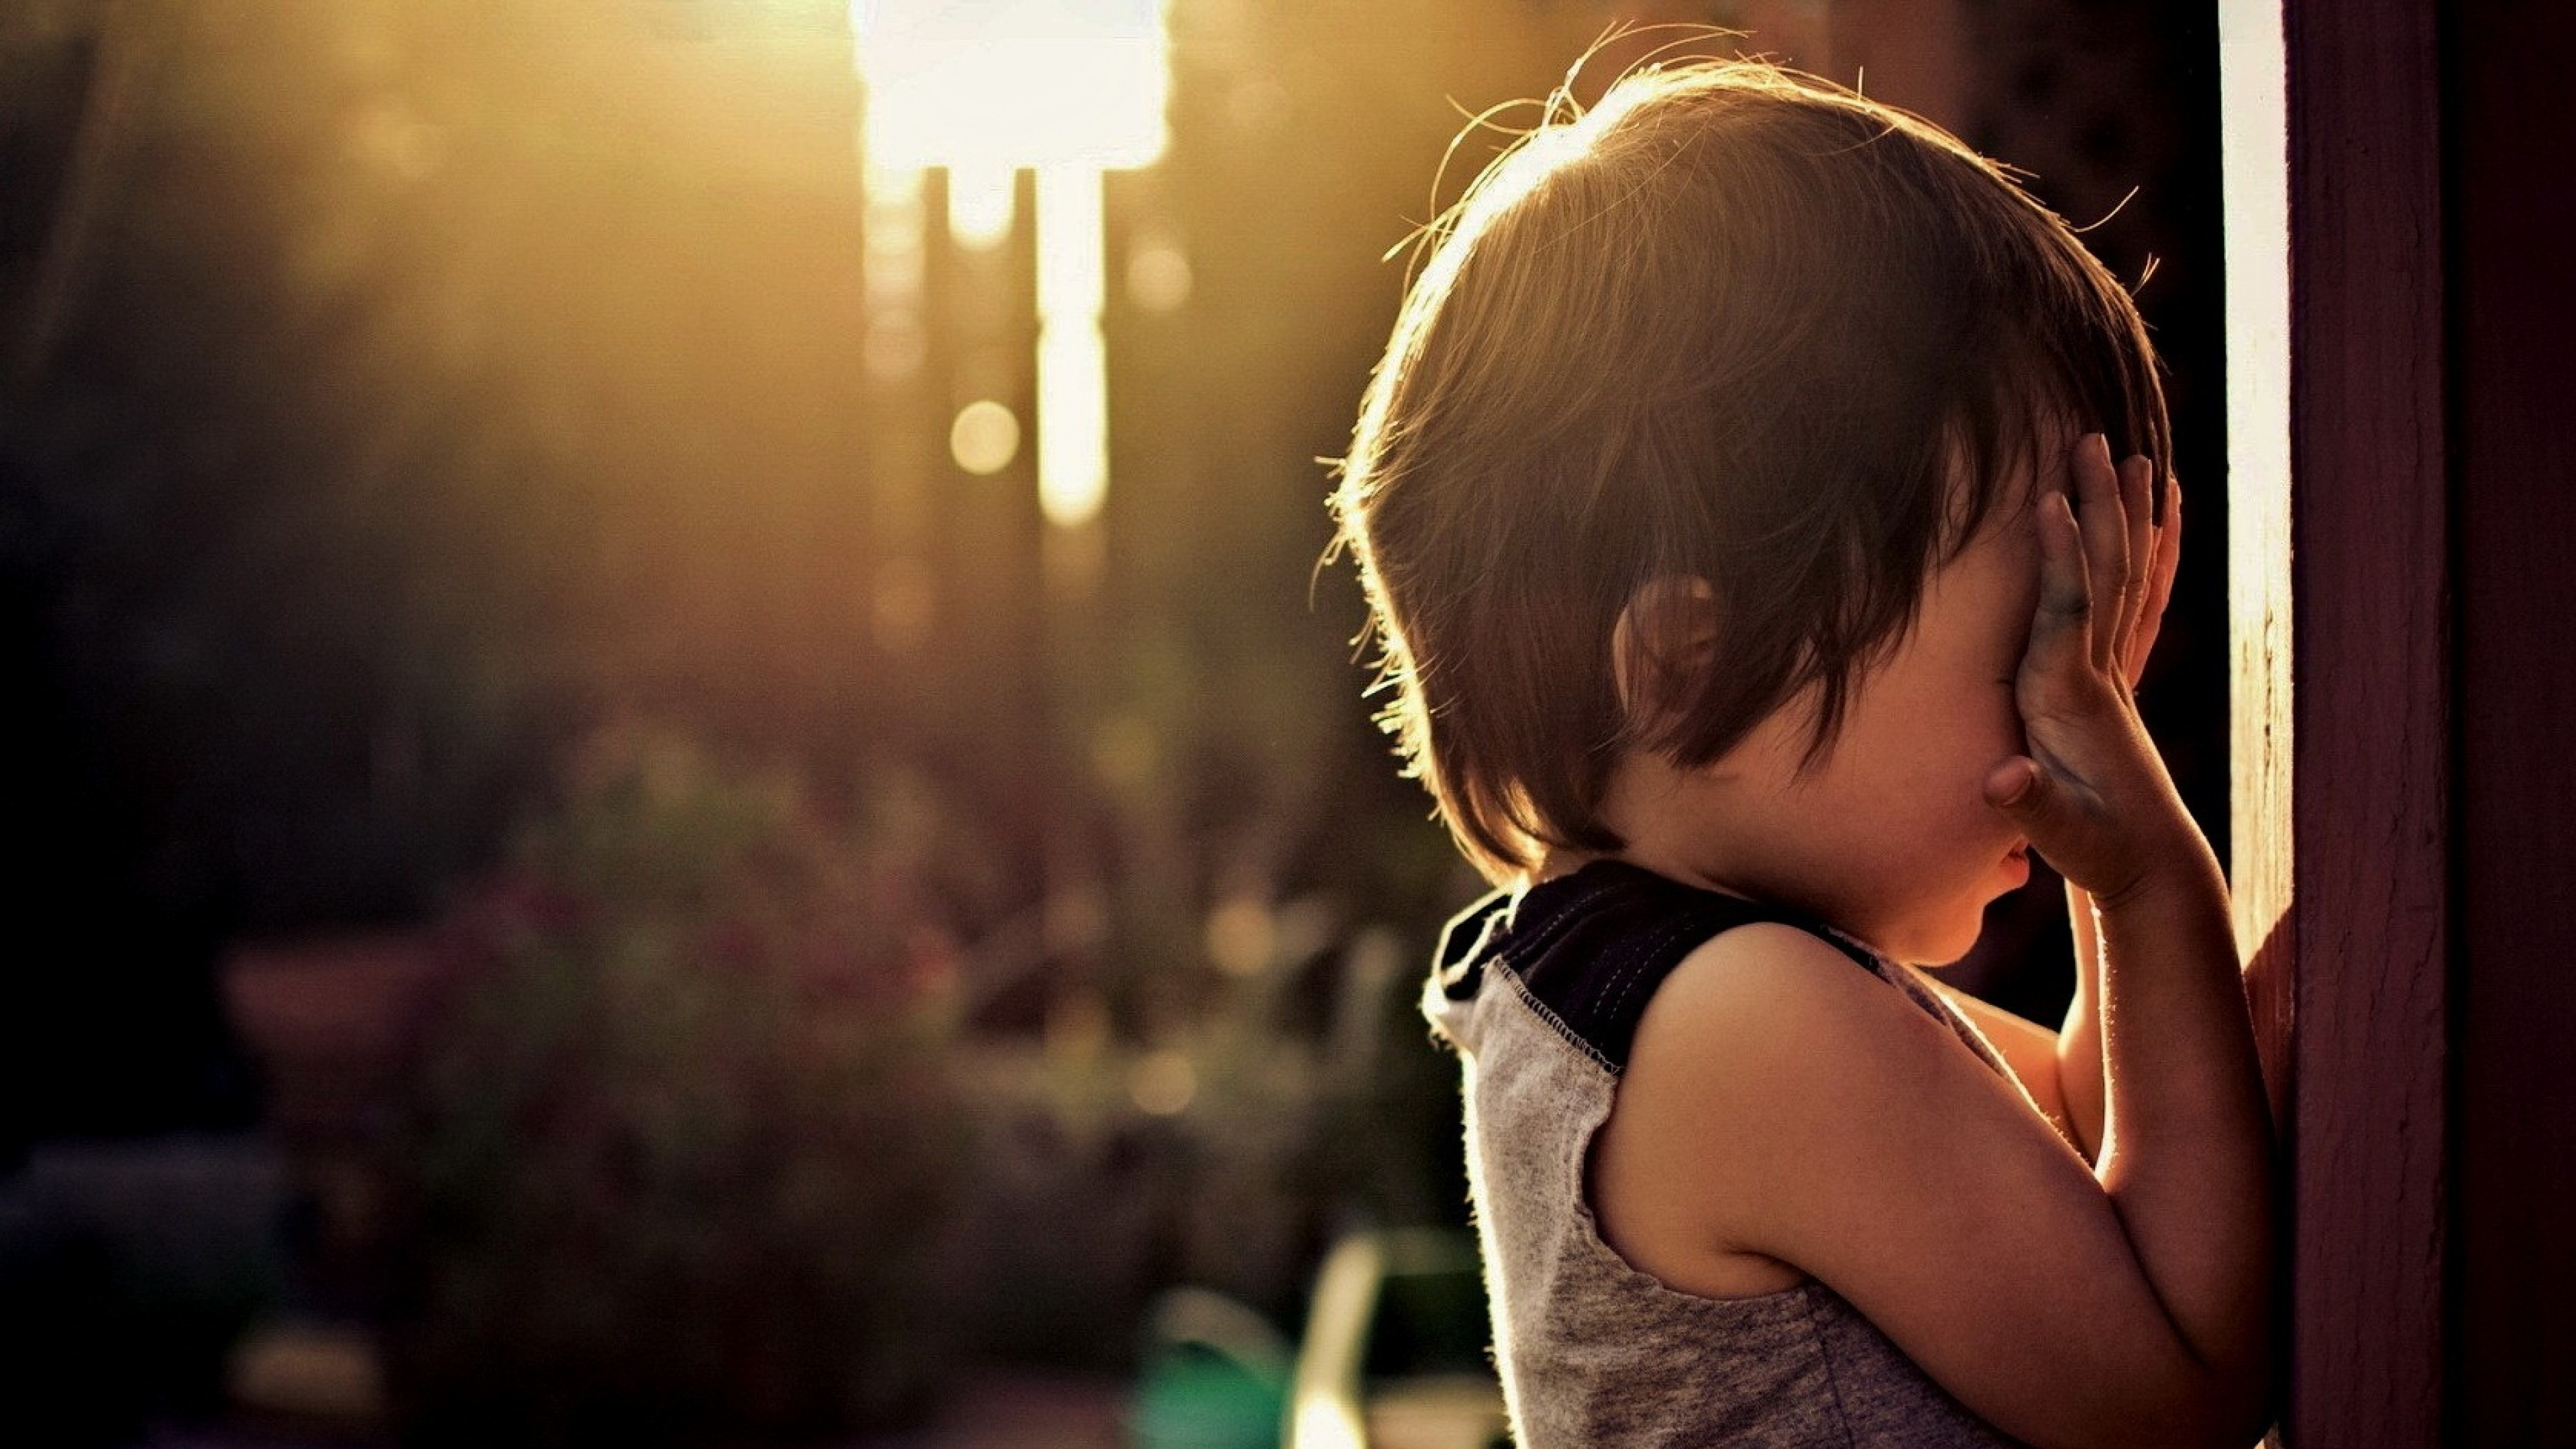 child_hurt_wall_sunshine_54358_3840x2160